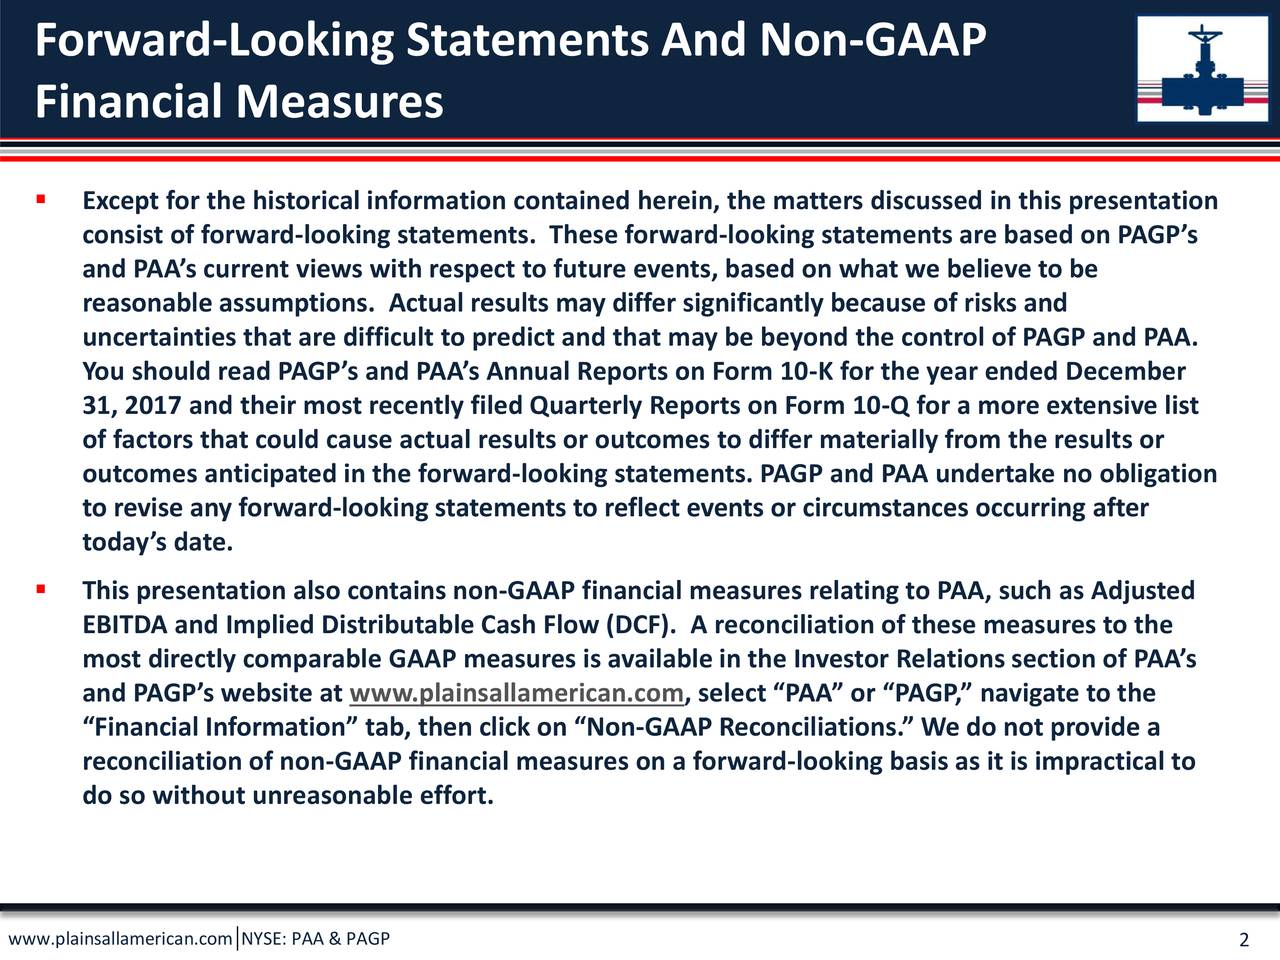 """Financial Measures  Except for the historical information contained herein, the matters discussed in this presentation consist of forward-looking statements. These forward-looking statements are based on PAGP's and PAA's current views with respect to future events, based on what we believe to be reasonable assumptions. Actual results may differ significantly because of risks and uncertainties that are difficult to predict and that may be beyond the control of PAGP and PAA. You should read PAGP's and PAA's Annual Reports on Form 10-K for the year ended December 31, 2017 and their most recently filed Quarterly Reports on Form 10-Q for a more extensive list of factors that could cause actual results or outcomes to differ materially from the results or outcomes anticipated in the forward-looking statements. PAGP and PAA undertake no obligation to revise any forward-looking statements to reflect events or circumstances occurring after today's date.  This presentation also contains non-GAAP financial measures relating to PAA, such as Adjusted EBITDA and Implied Distributable Cash Flow (DCF). A reconciliation of these measures to the most directly comparable GAAP measures is available in the Investor Relations section of PAA's and PAGP's website at www.plainsallamerican.com, select """"PAA"""" or """"PAGP,"""" navigate to the """"Financial Information"""" tab, then click on """"Non-GAAP Reconciliations."""" We do not provide a reconciliation of non-GAAP financial measures on a forward-looking basis as it is impractical to do so without unreasonable effort. www.plainsallamerican.com NYSE: PAA & PAGP"""